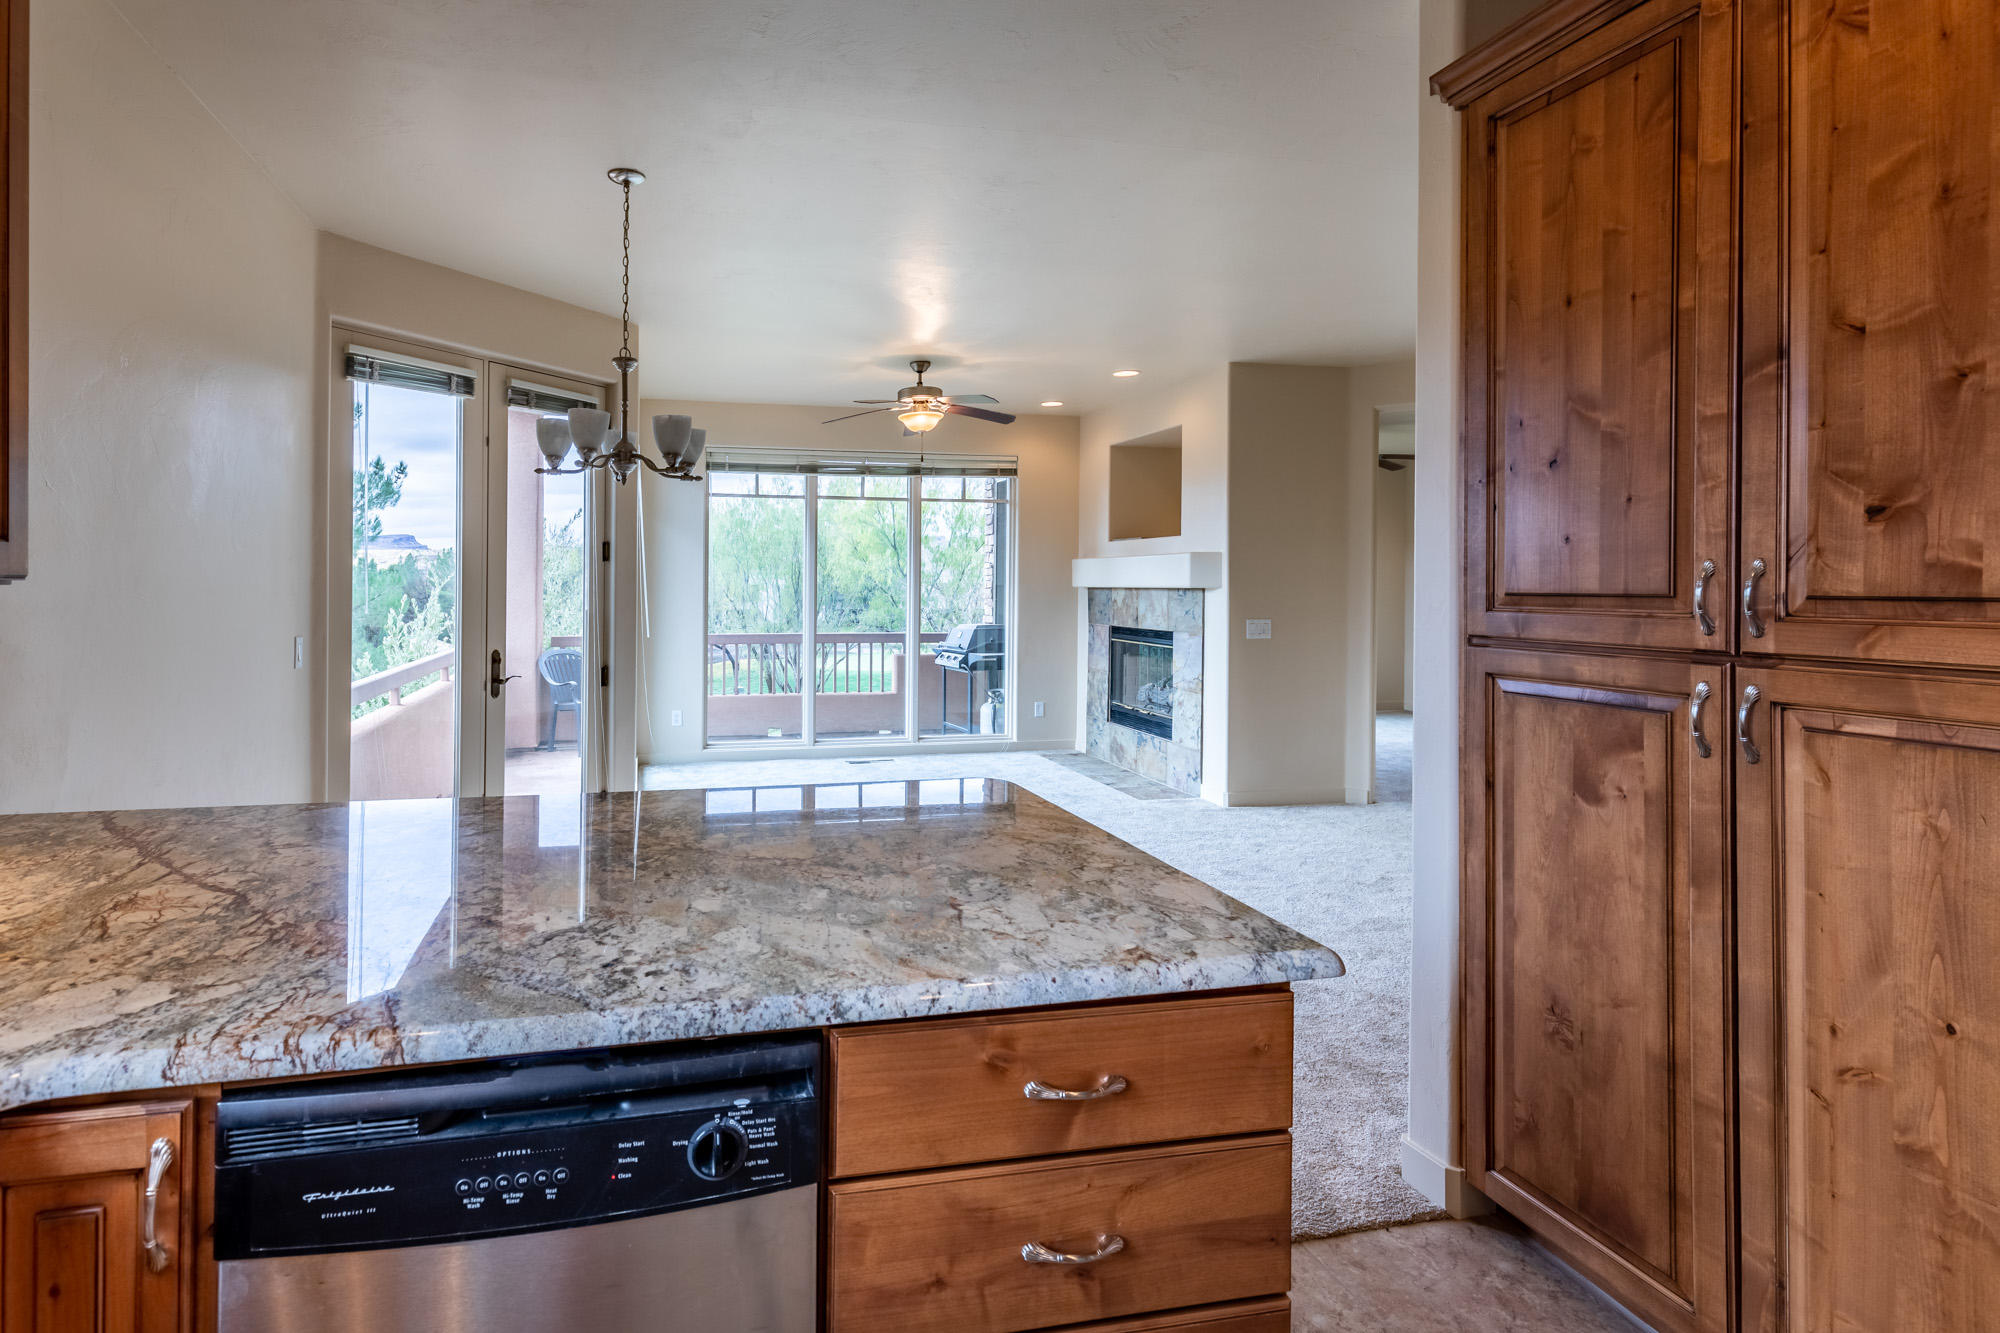 88219 271 Country LN St George UT